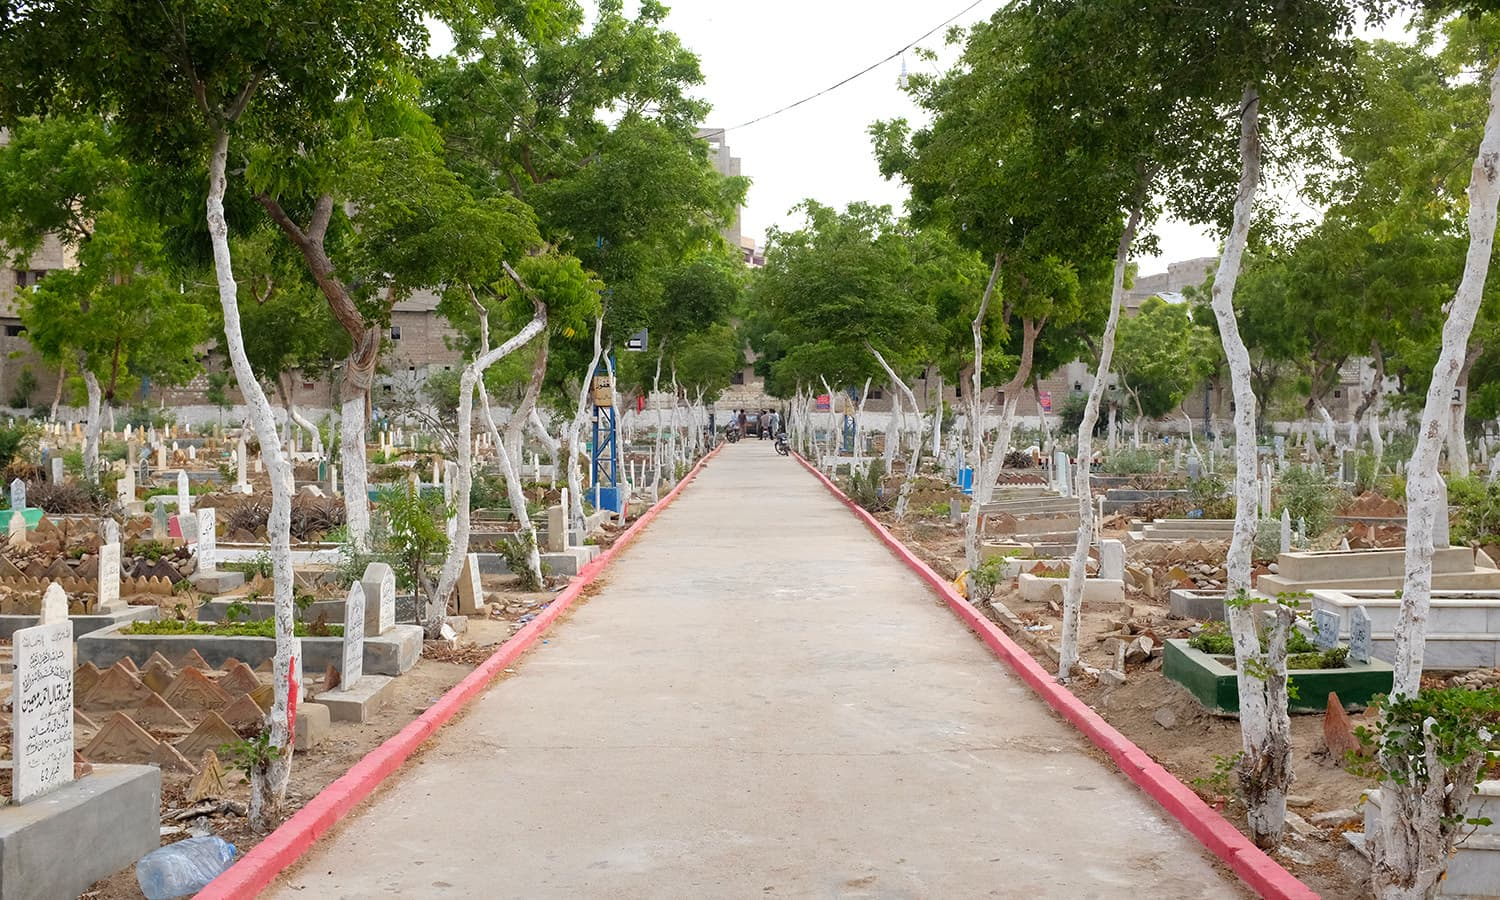 The graveyard is well maintained compared to other graveyards in the city.